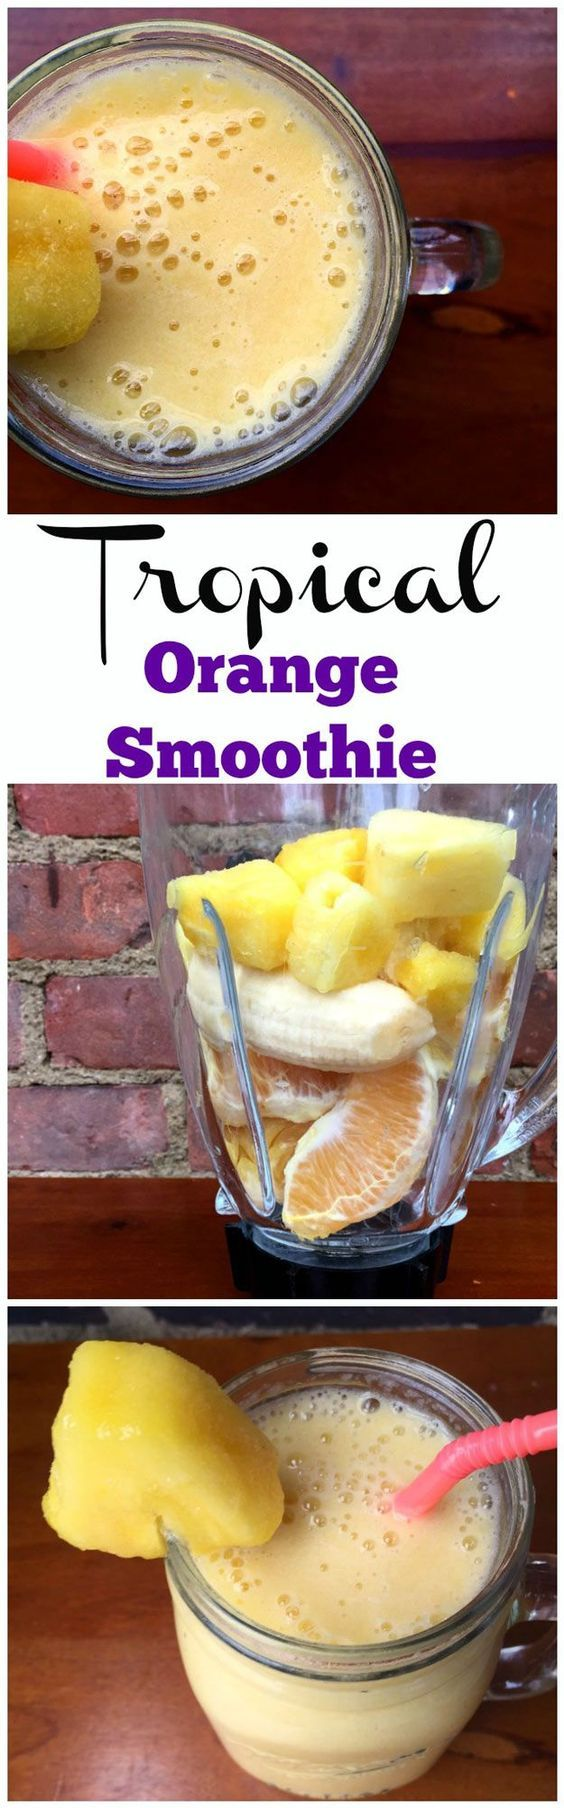 Healthy smoothie recipes and easy ideas perfect for breakfast, energy. Low calorie and high protein recipes for weightloss and to lose weight. Simple homemade recipe ideas that kids love. | Easy Breezy Tropical Orange Smoothie | diyjoy.com/...